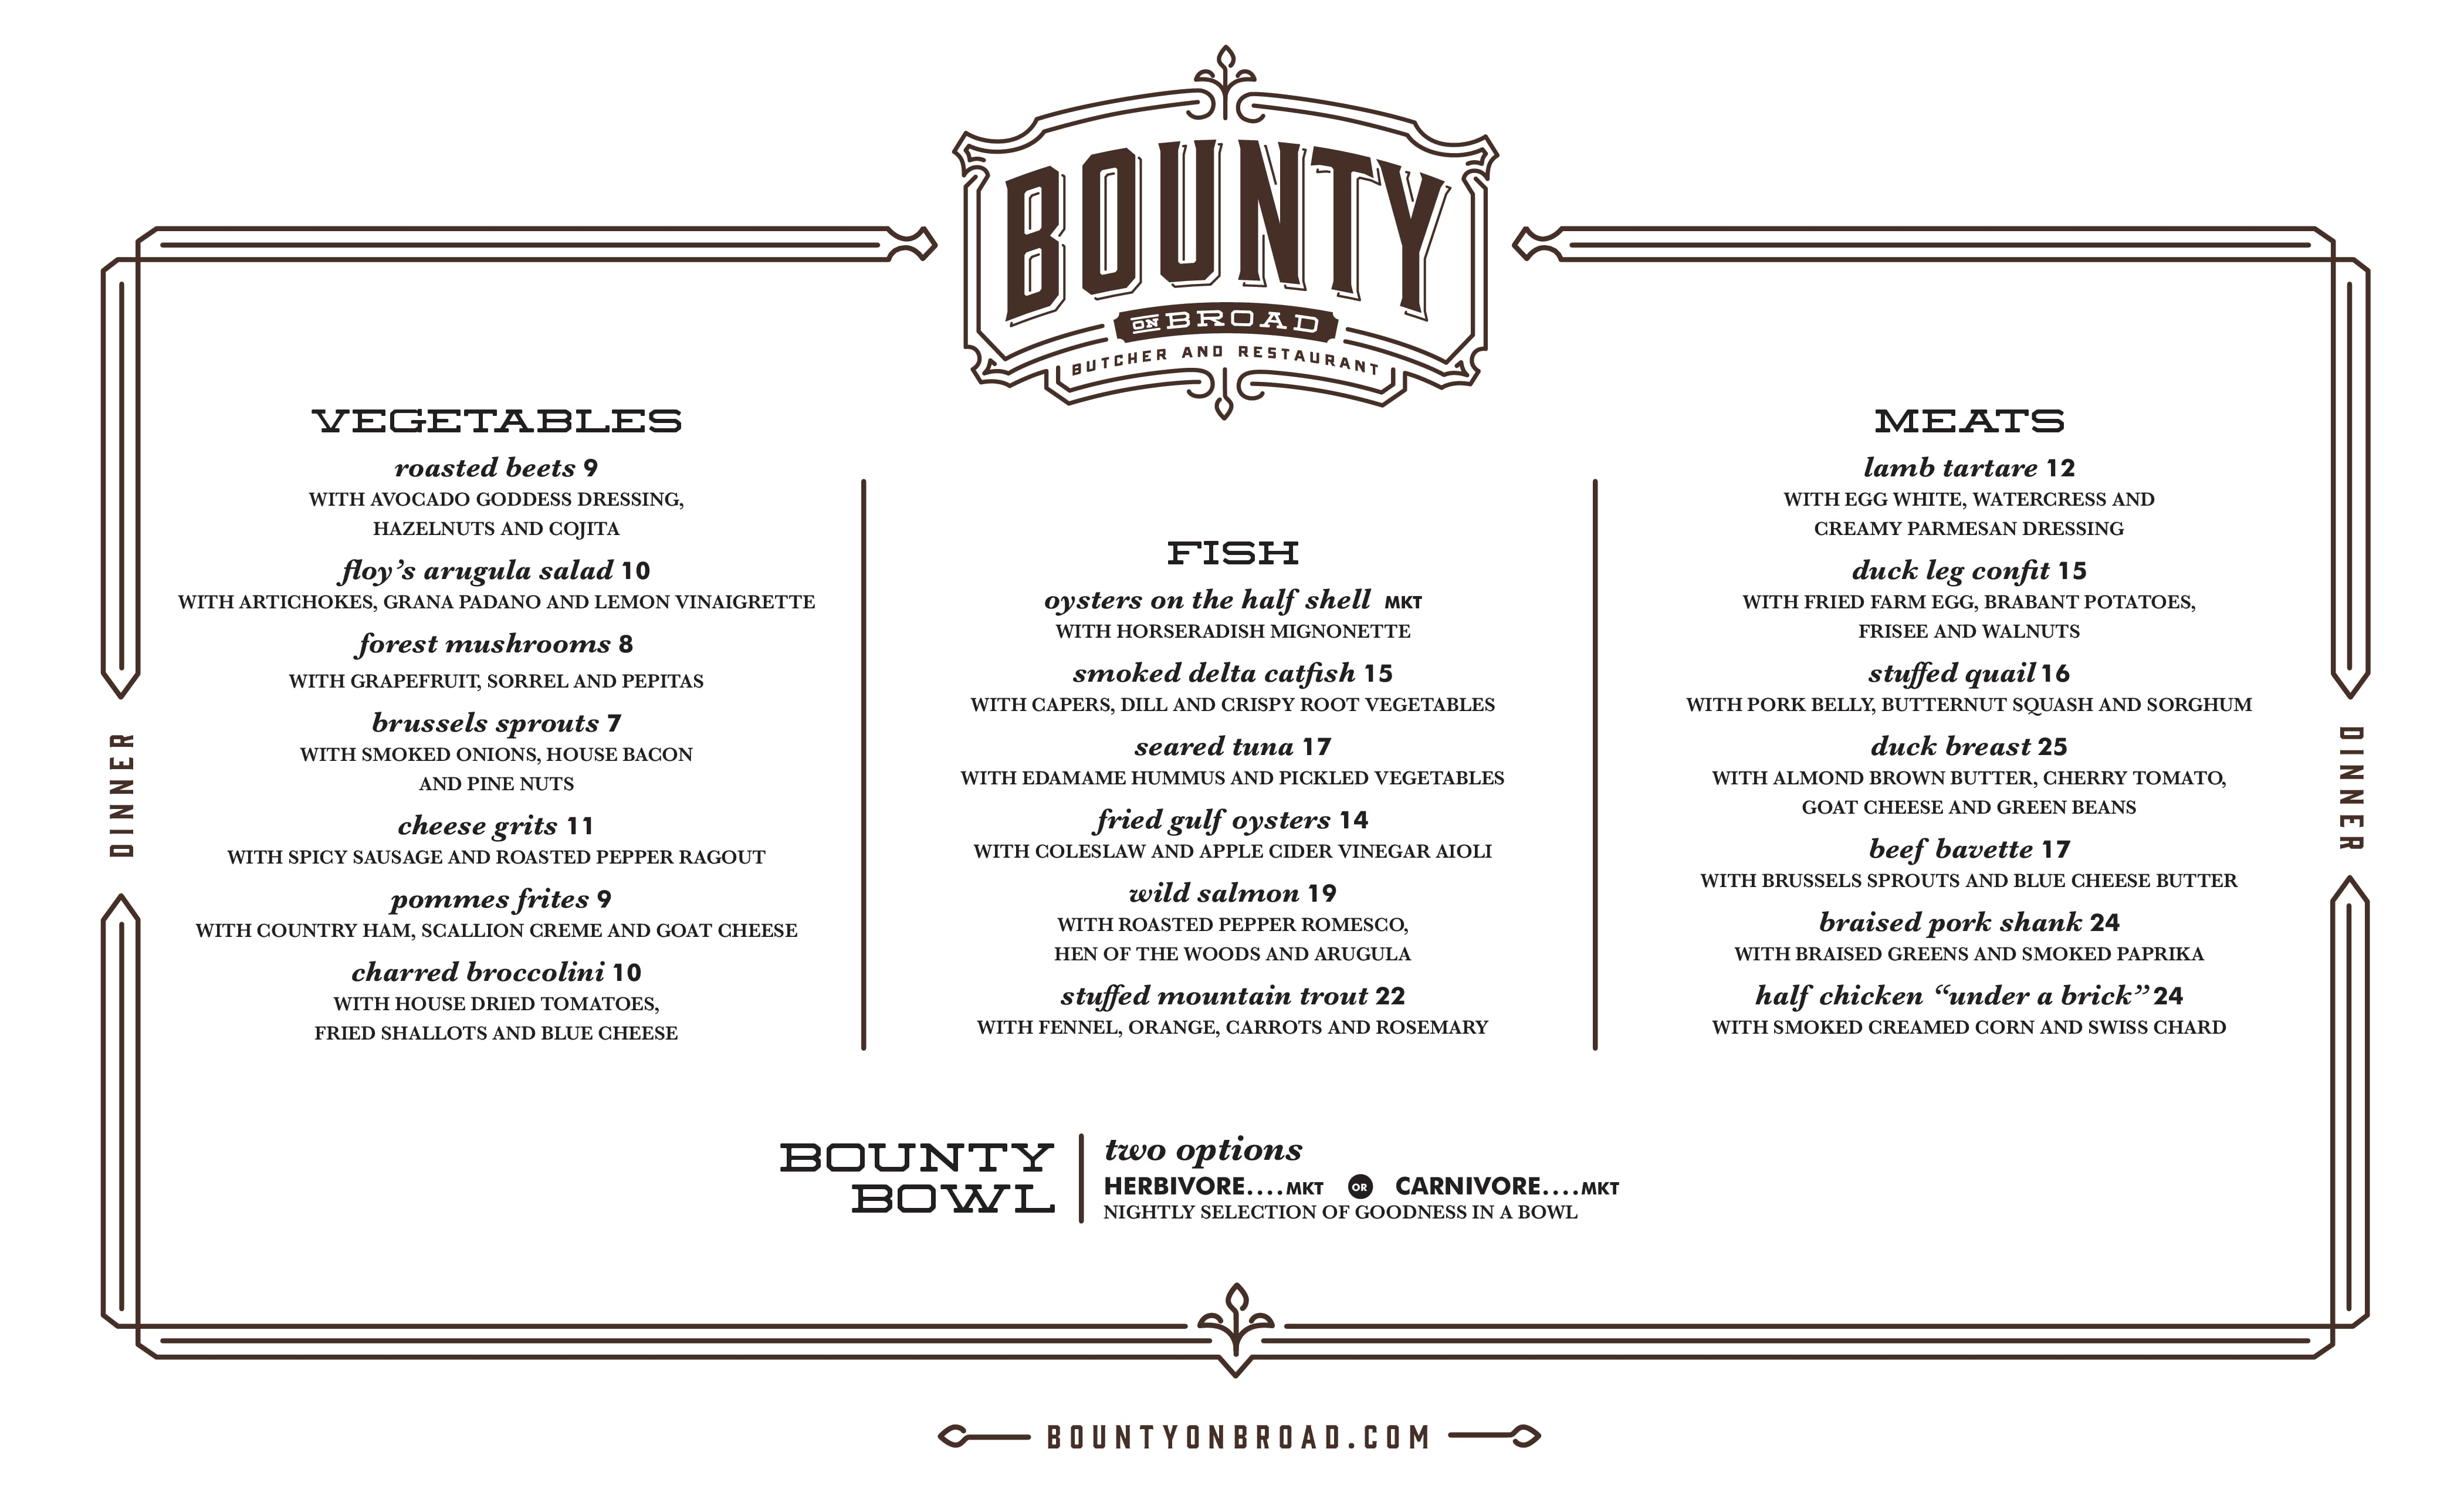 Bounty Restaurant Memphis Menu